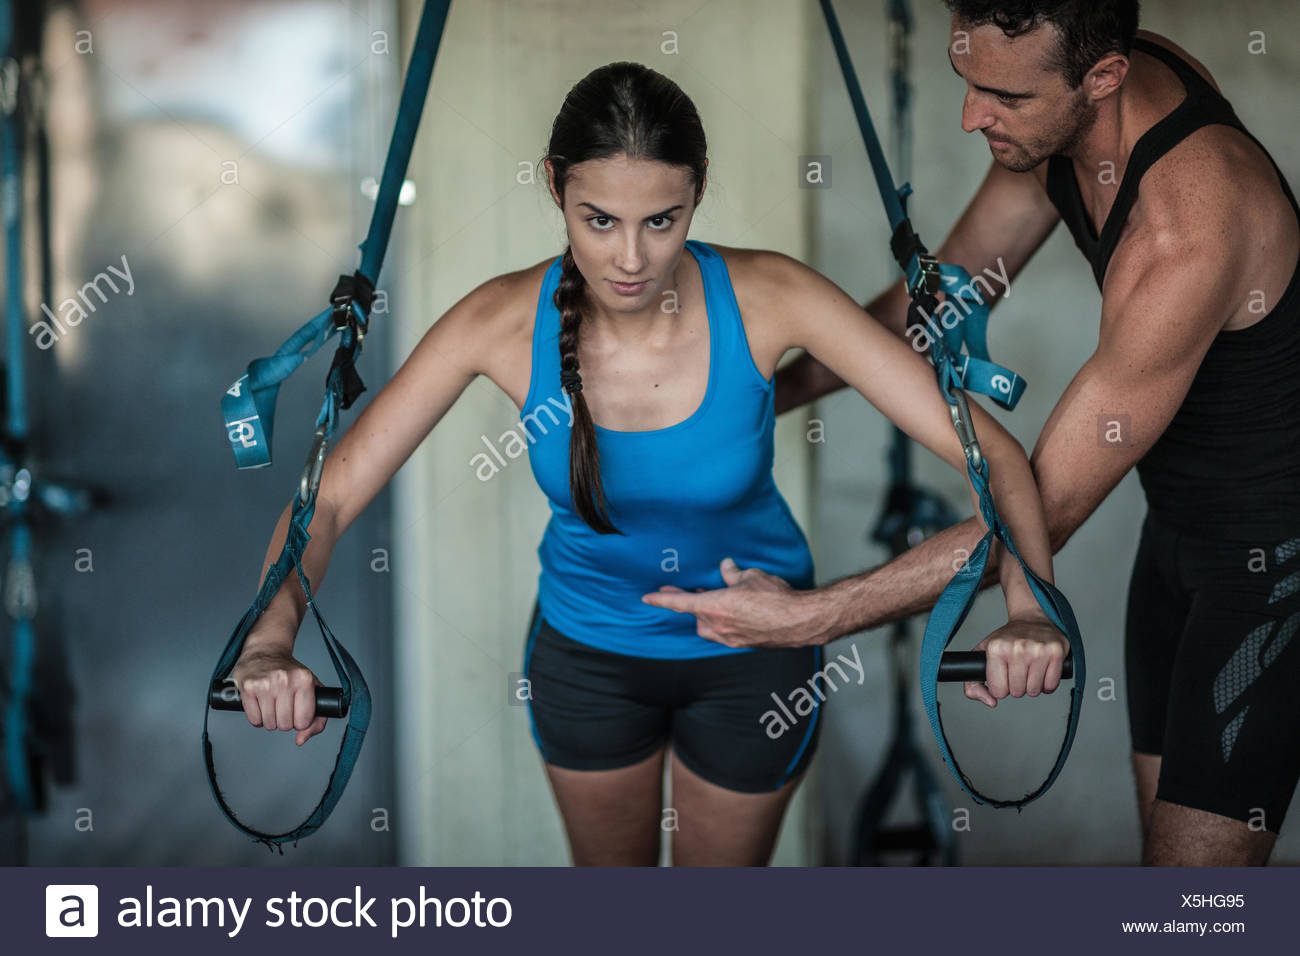 Young woman weight training - Stock Image